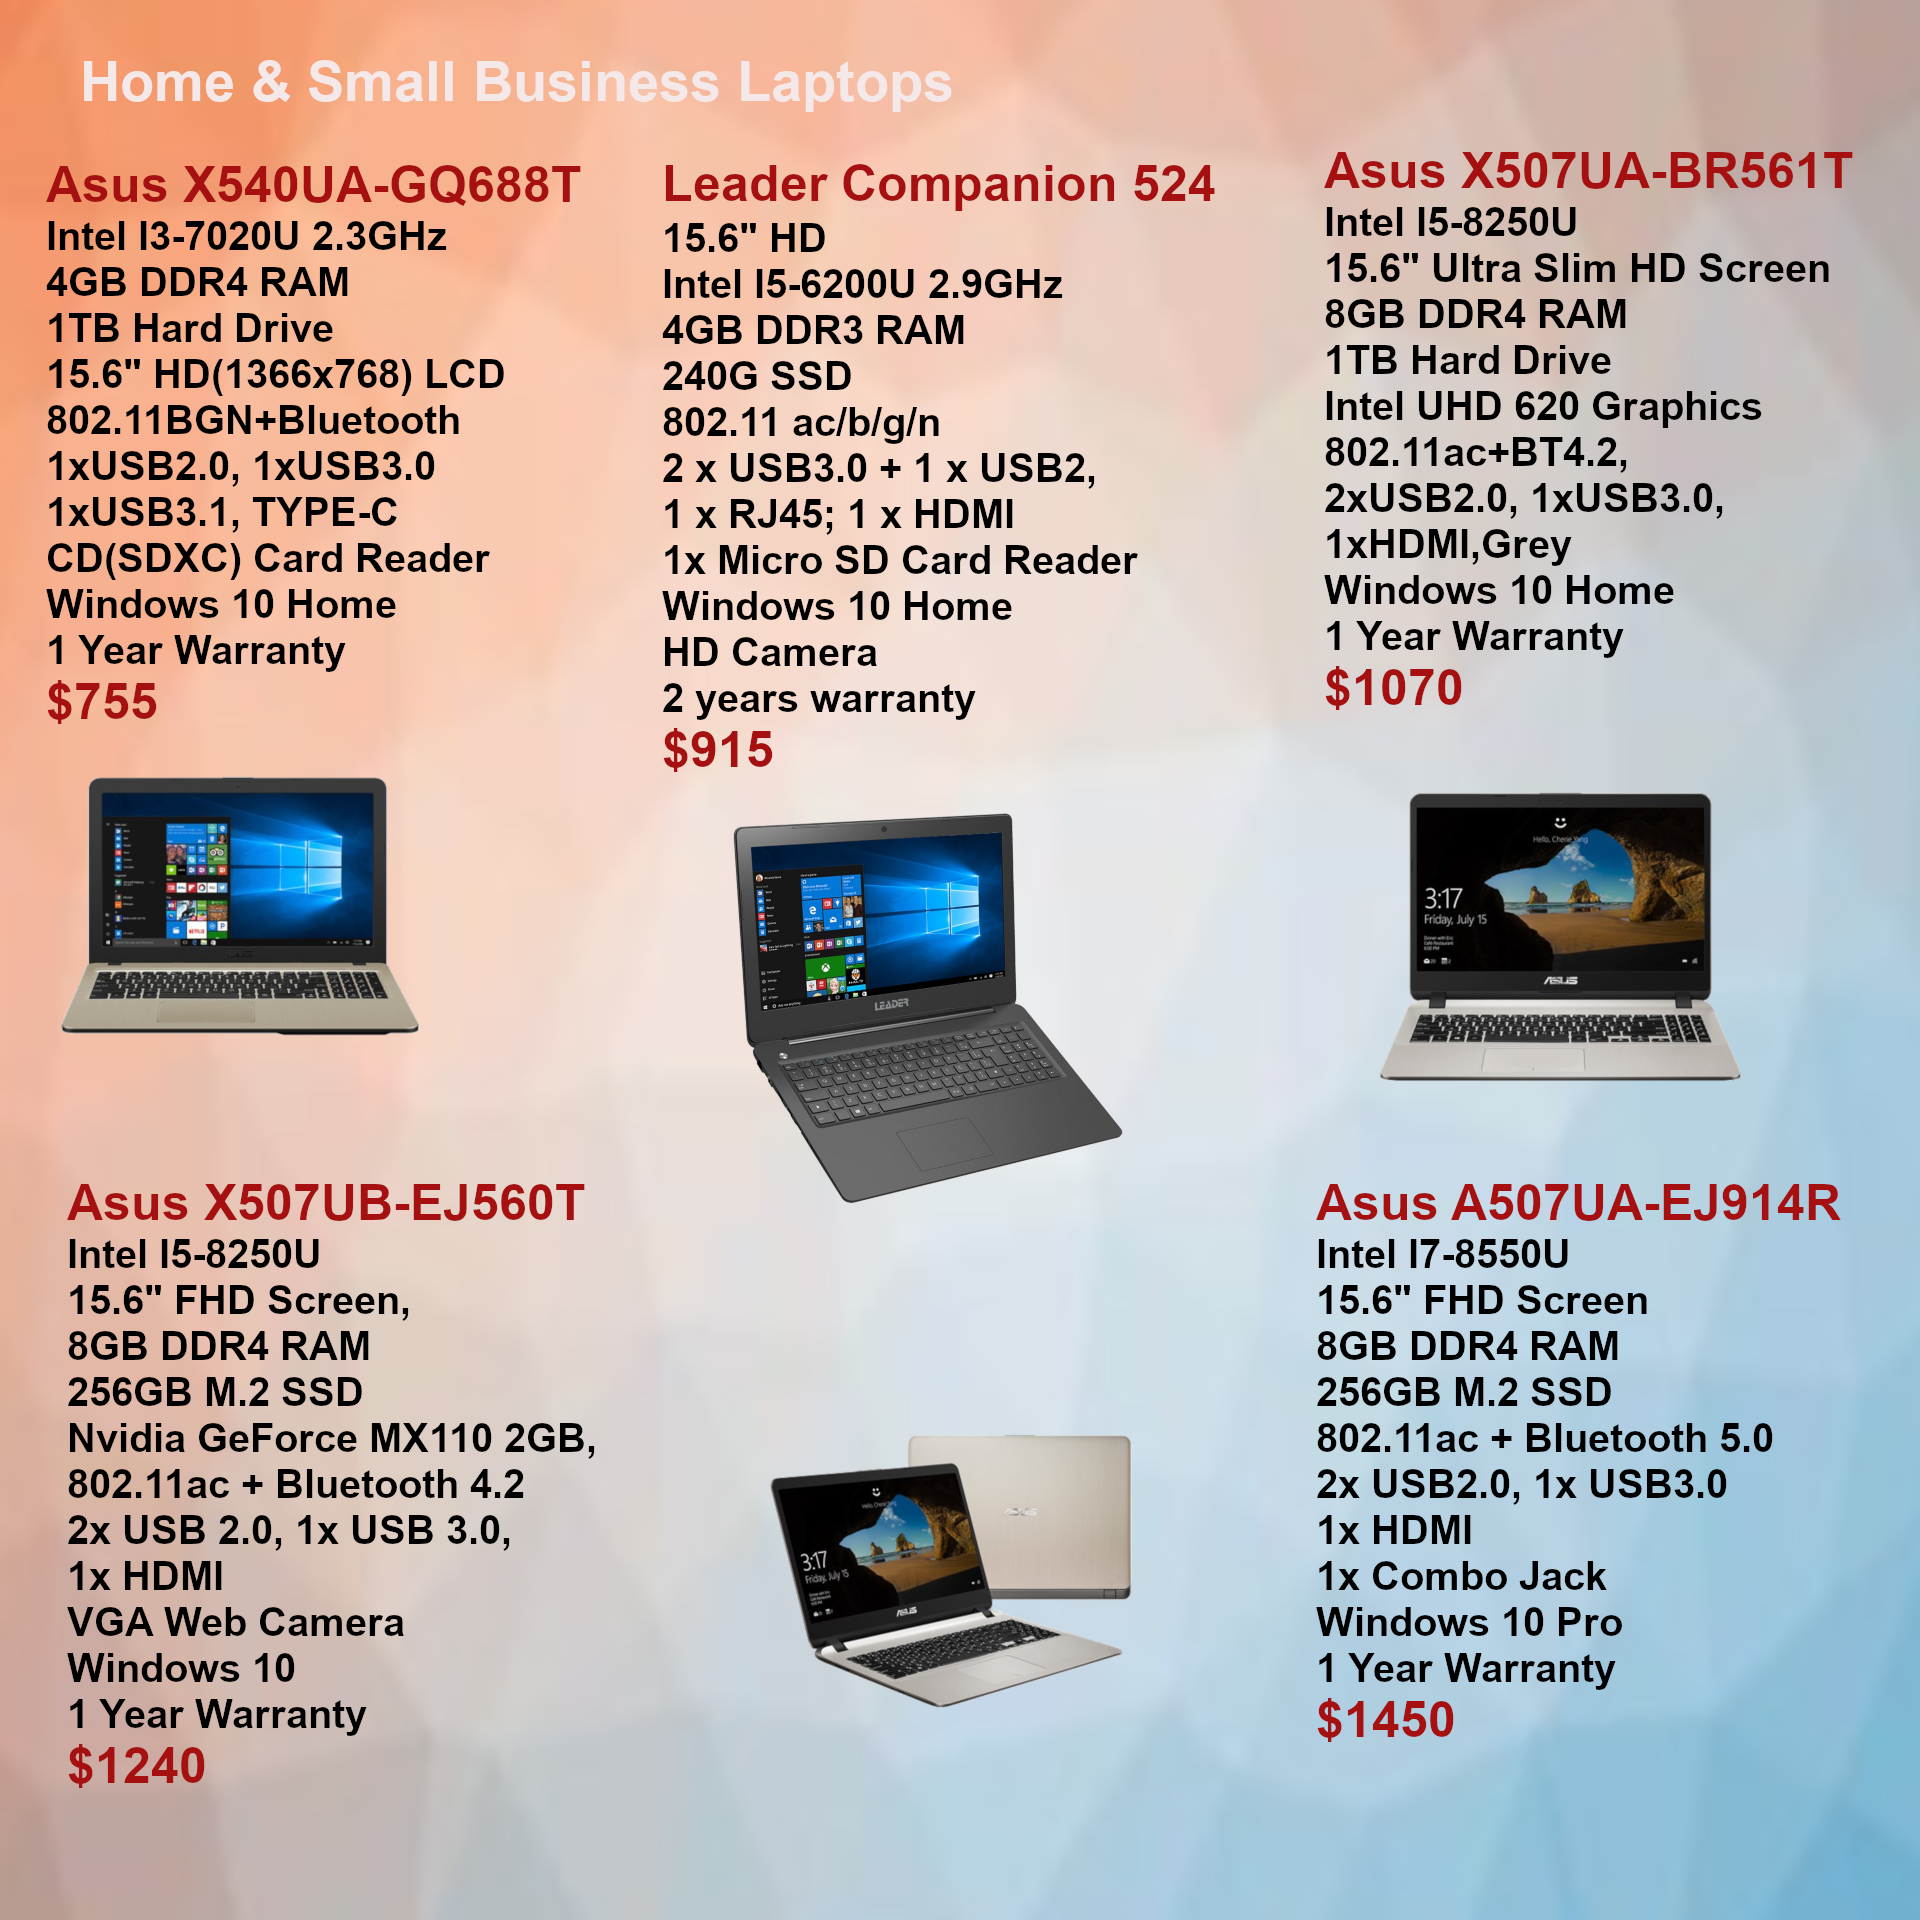 Home & Business laptops